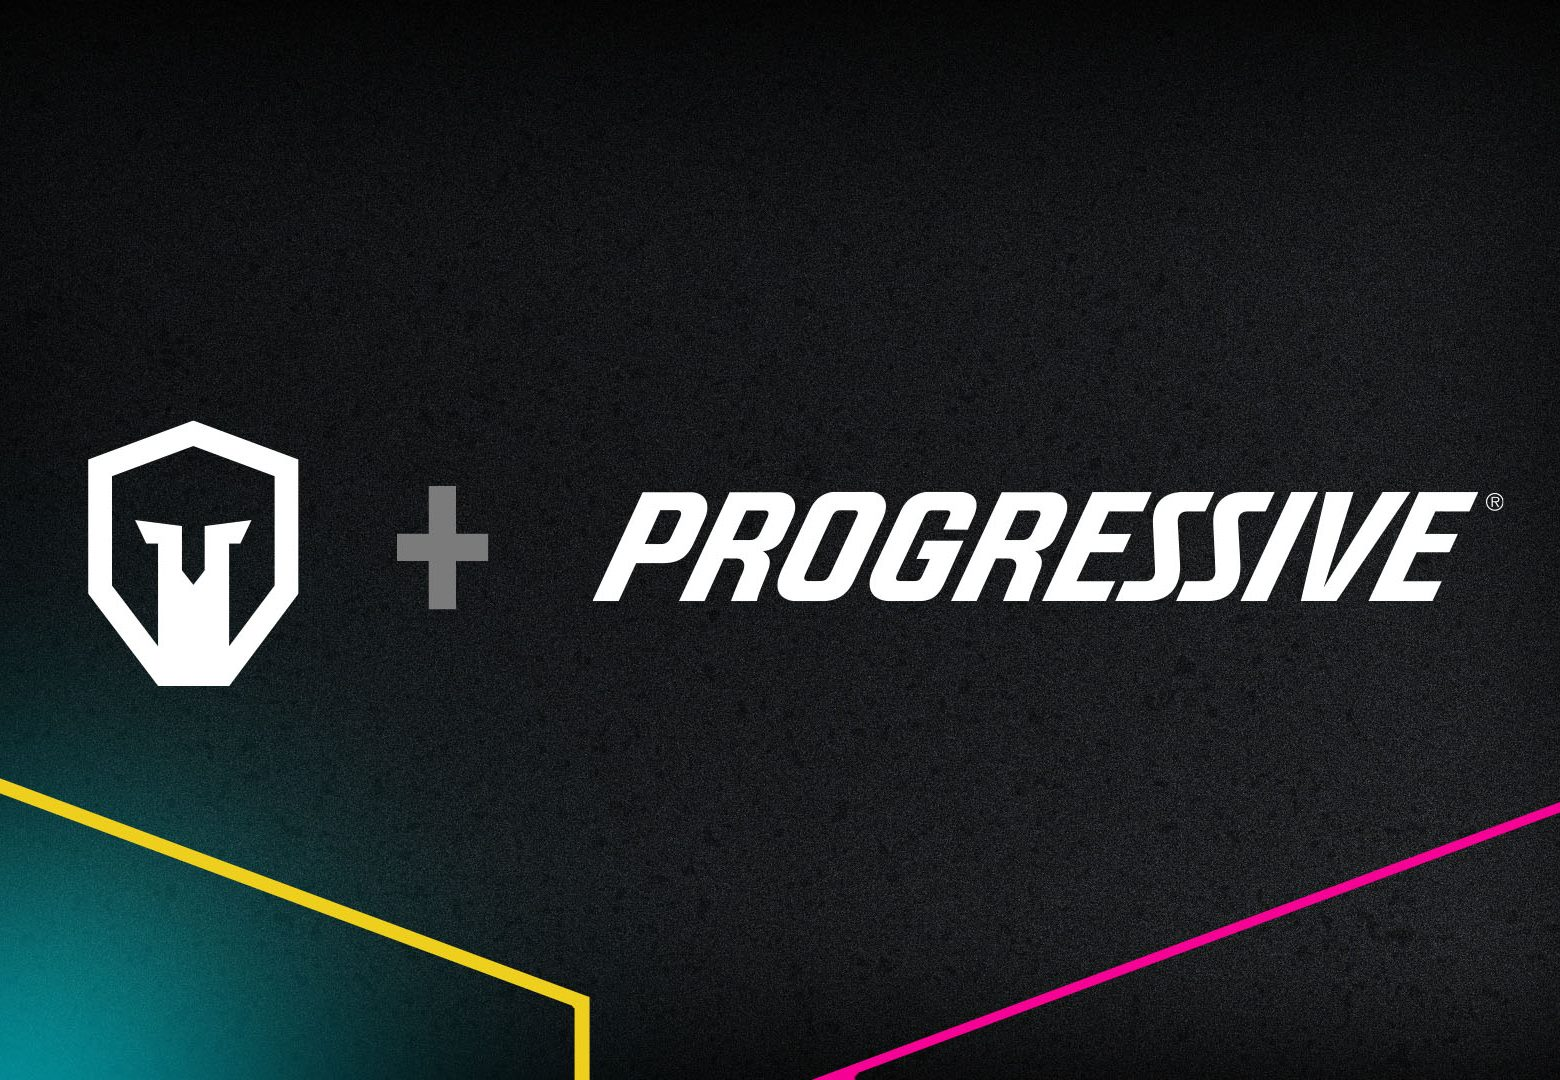 Immortals Gaming Club unveils LCS team partnership with Progressive